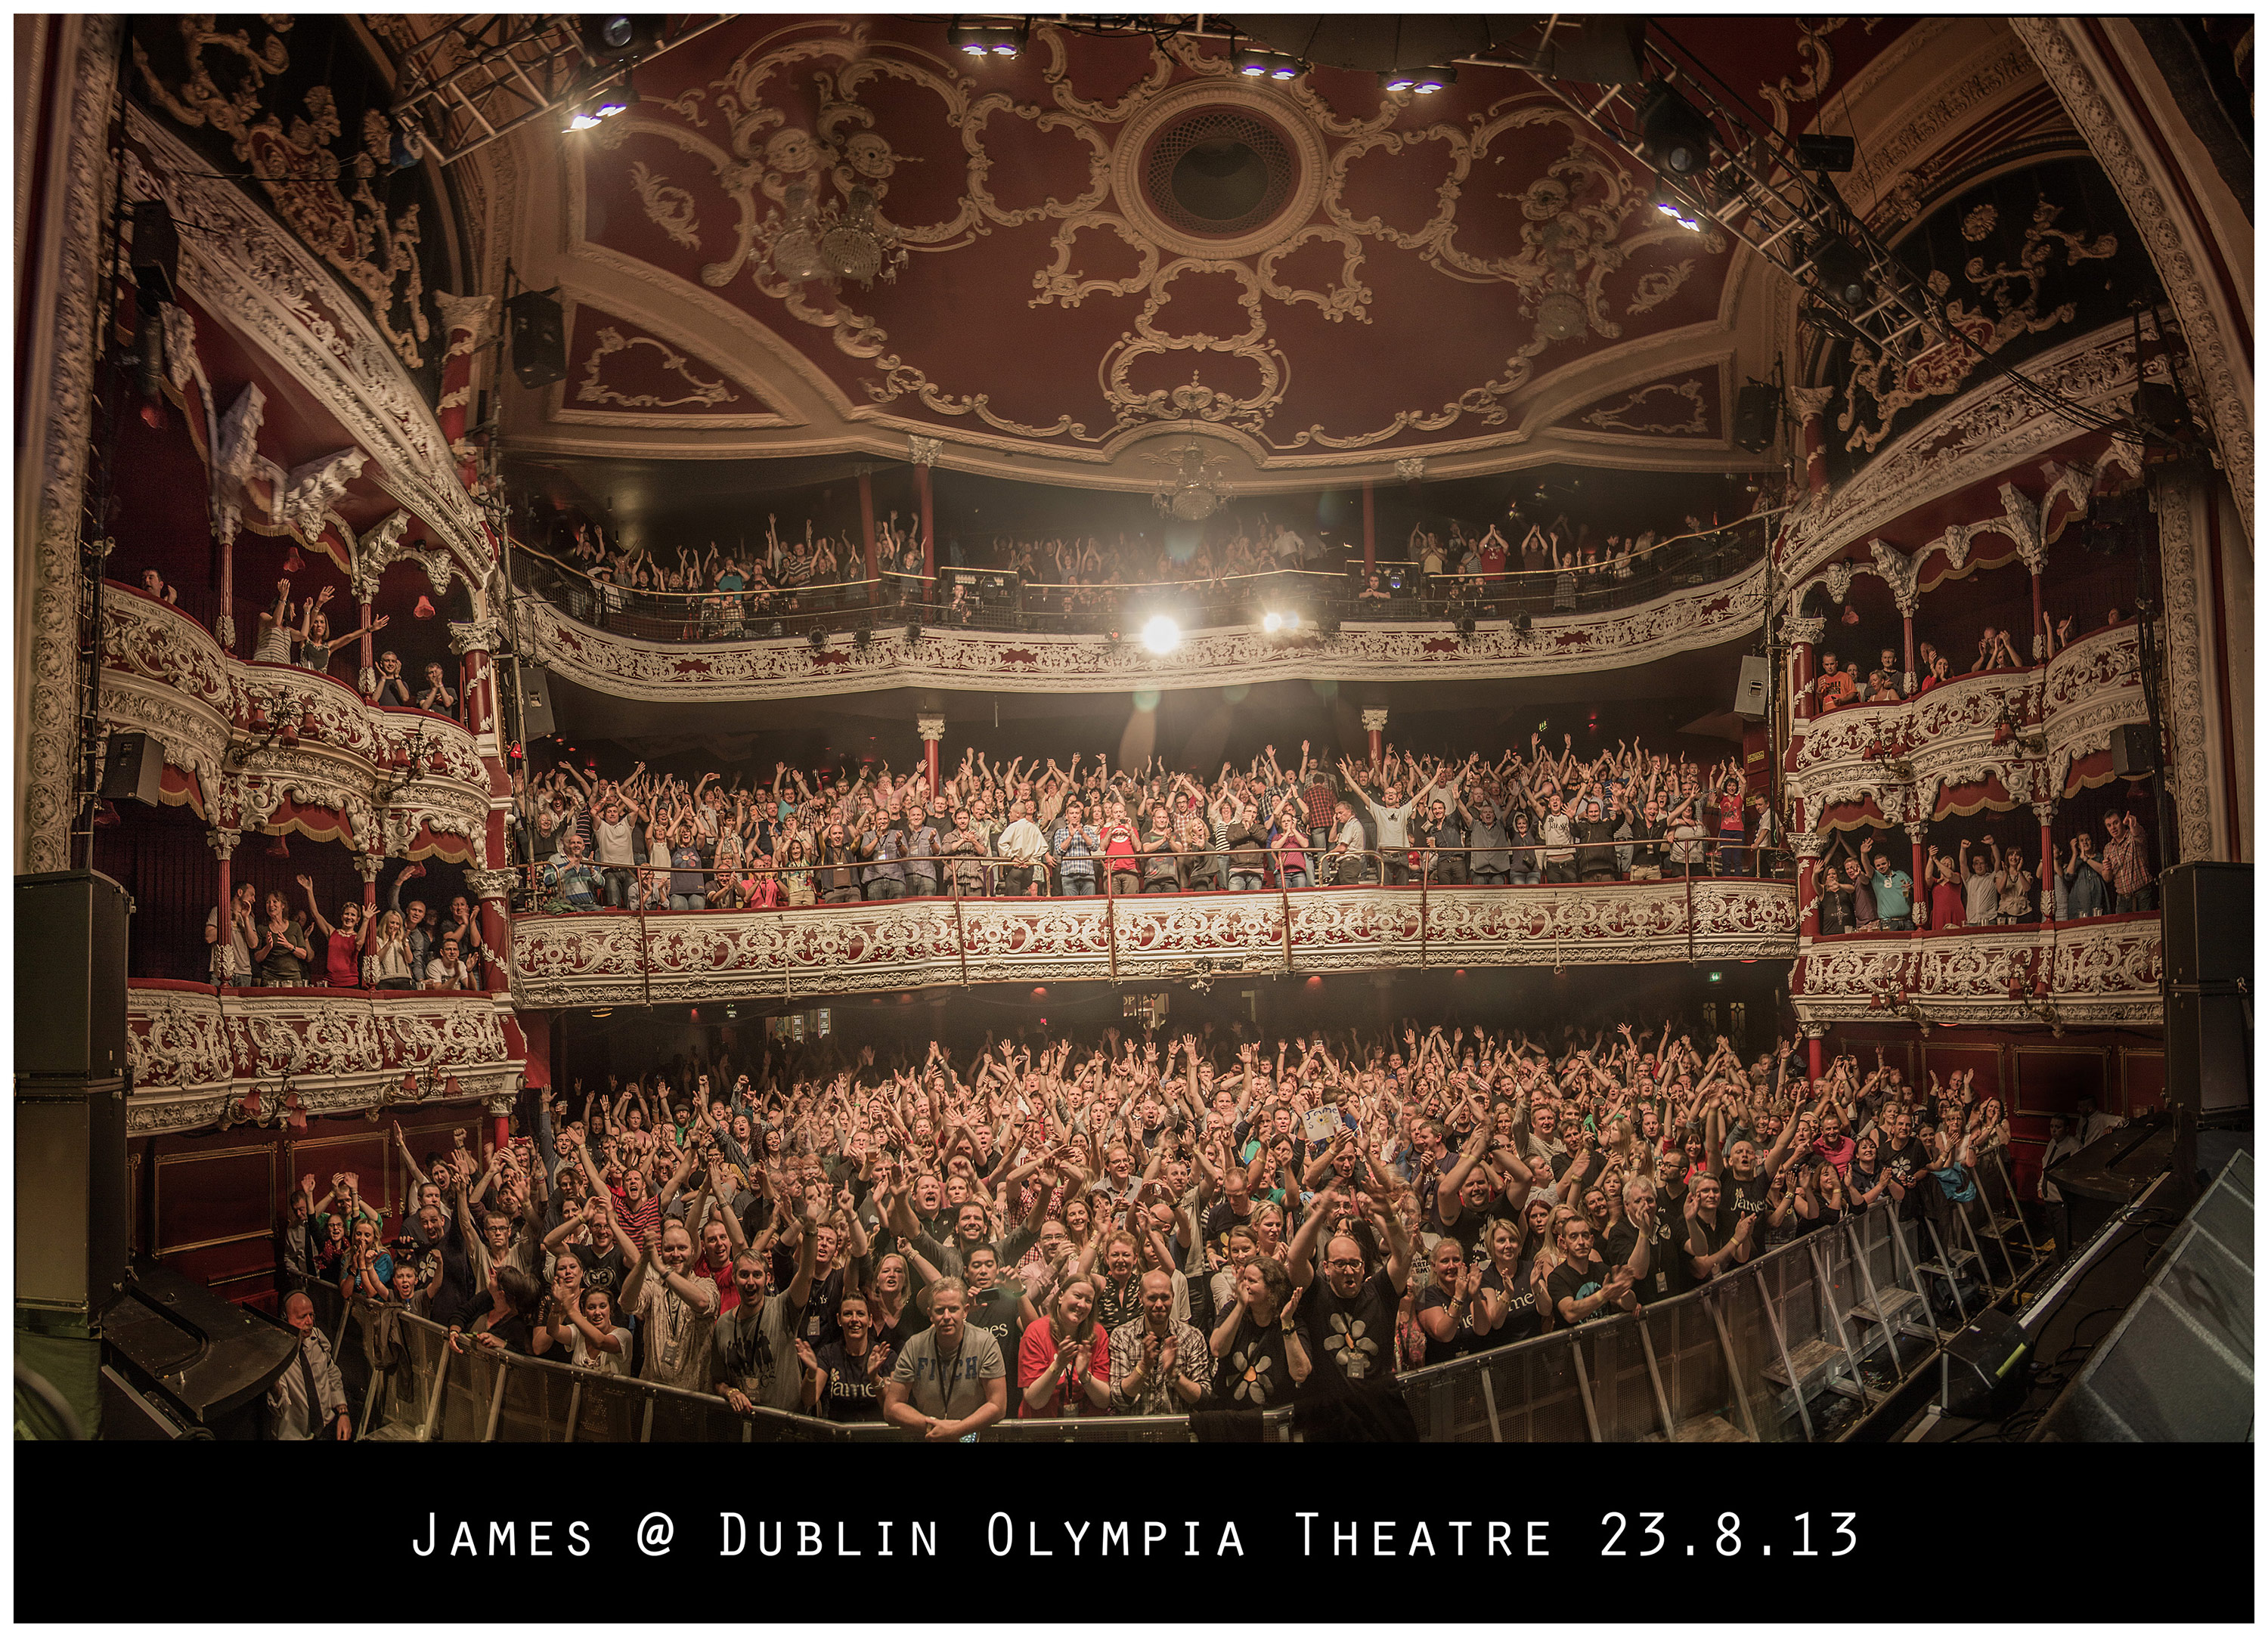 Larry s summertime photos summer 2013 james for The olympia